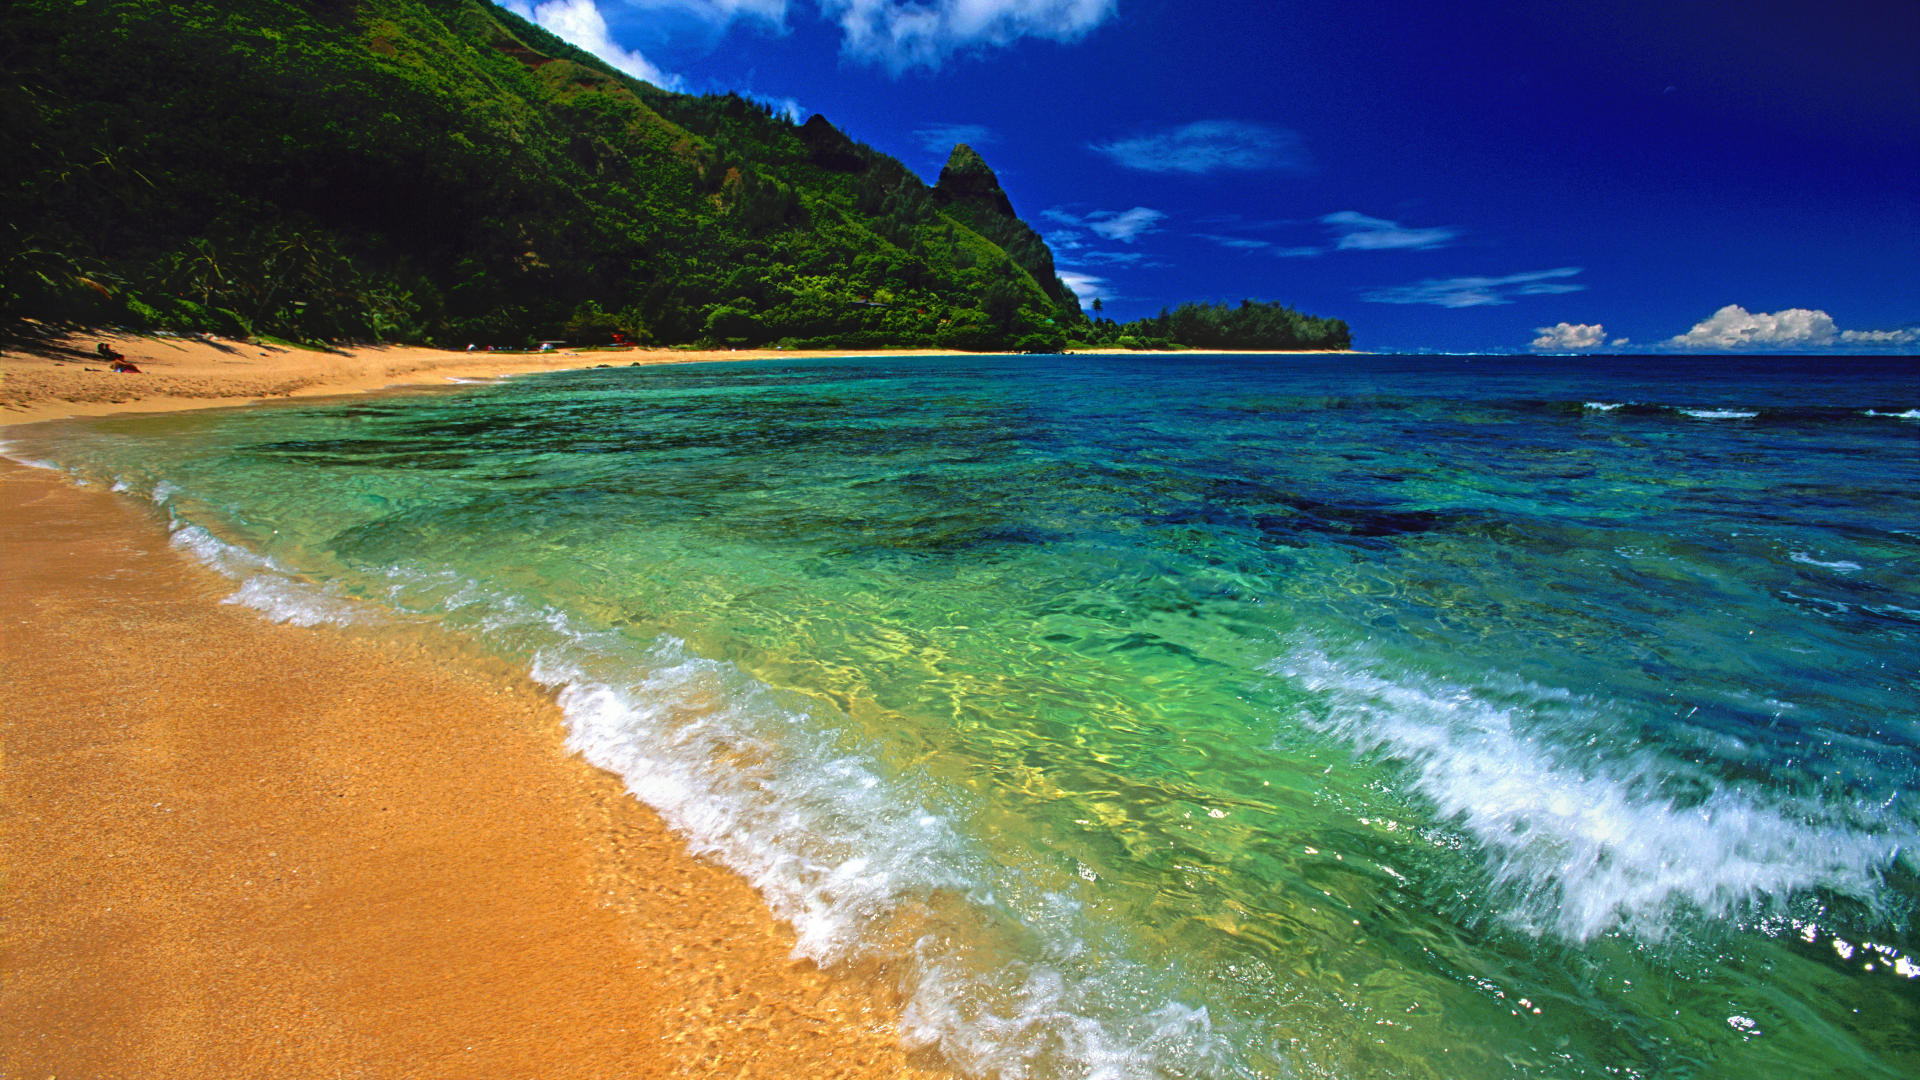 1920x1080 Free Desktop Wallpaper of Hawaii - WallpaperSafari Wallpaper Hawaii Beach -  WallpaperSafari Hawaiian Beach Wallpapers - Wallpaper Cave ...